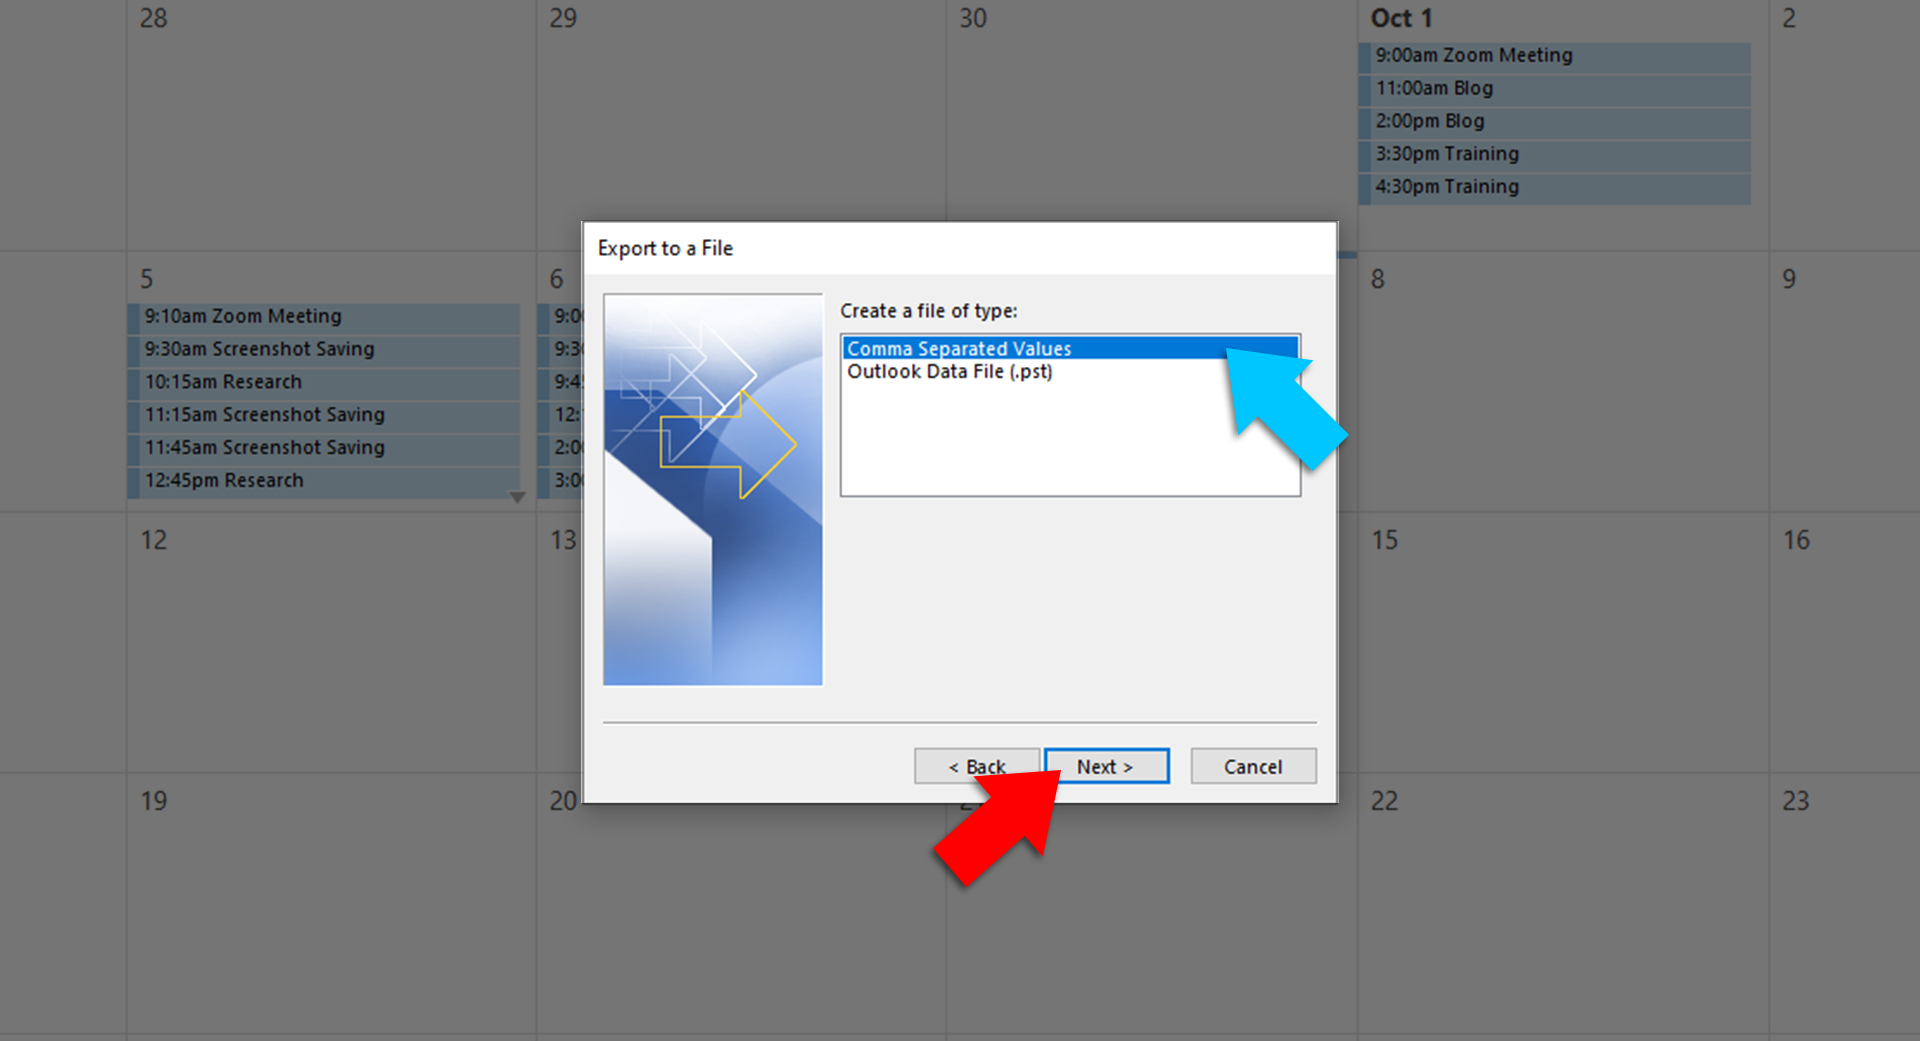 Choose the Comma Separated Values option and click Next. From the Personal Folders, select the Calendar option and click Next.